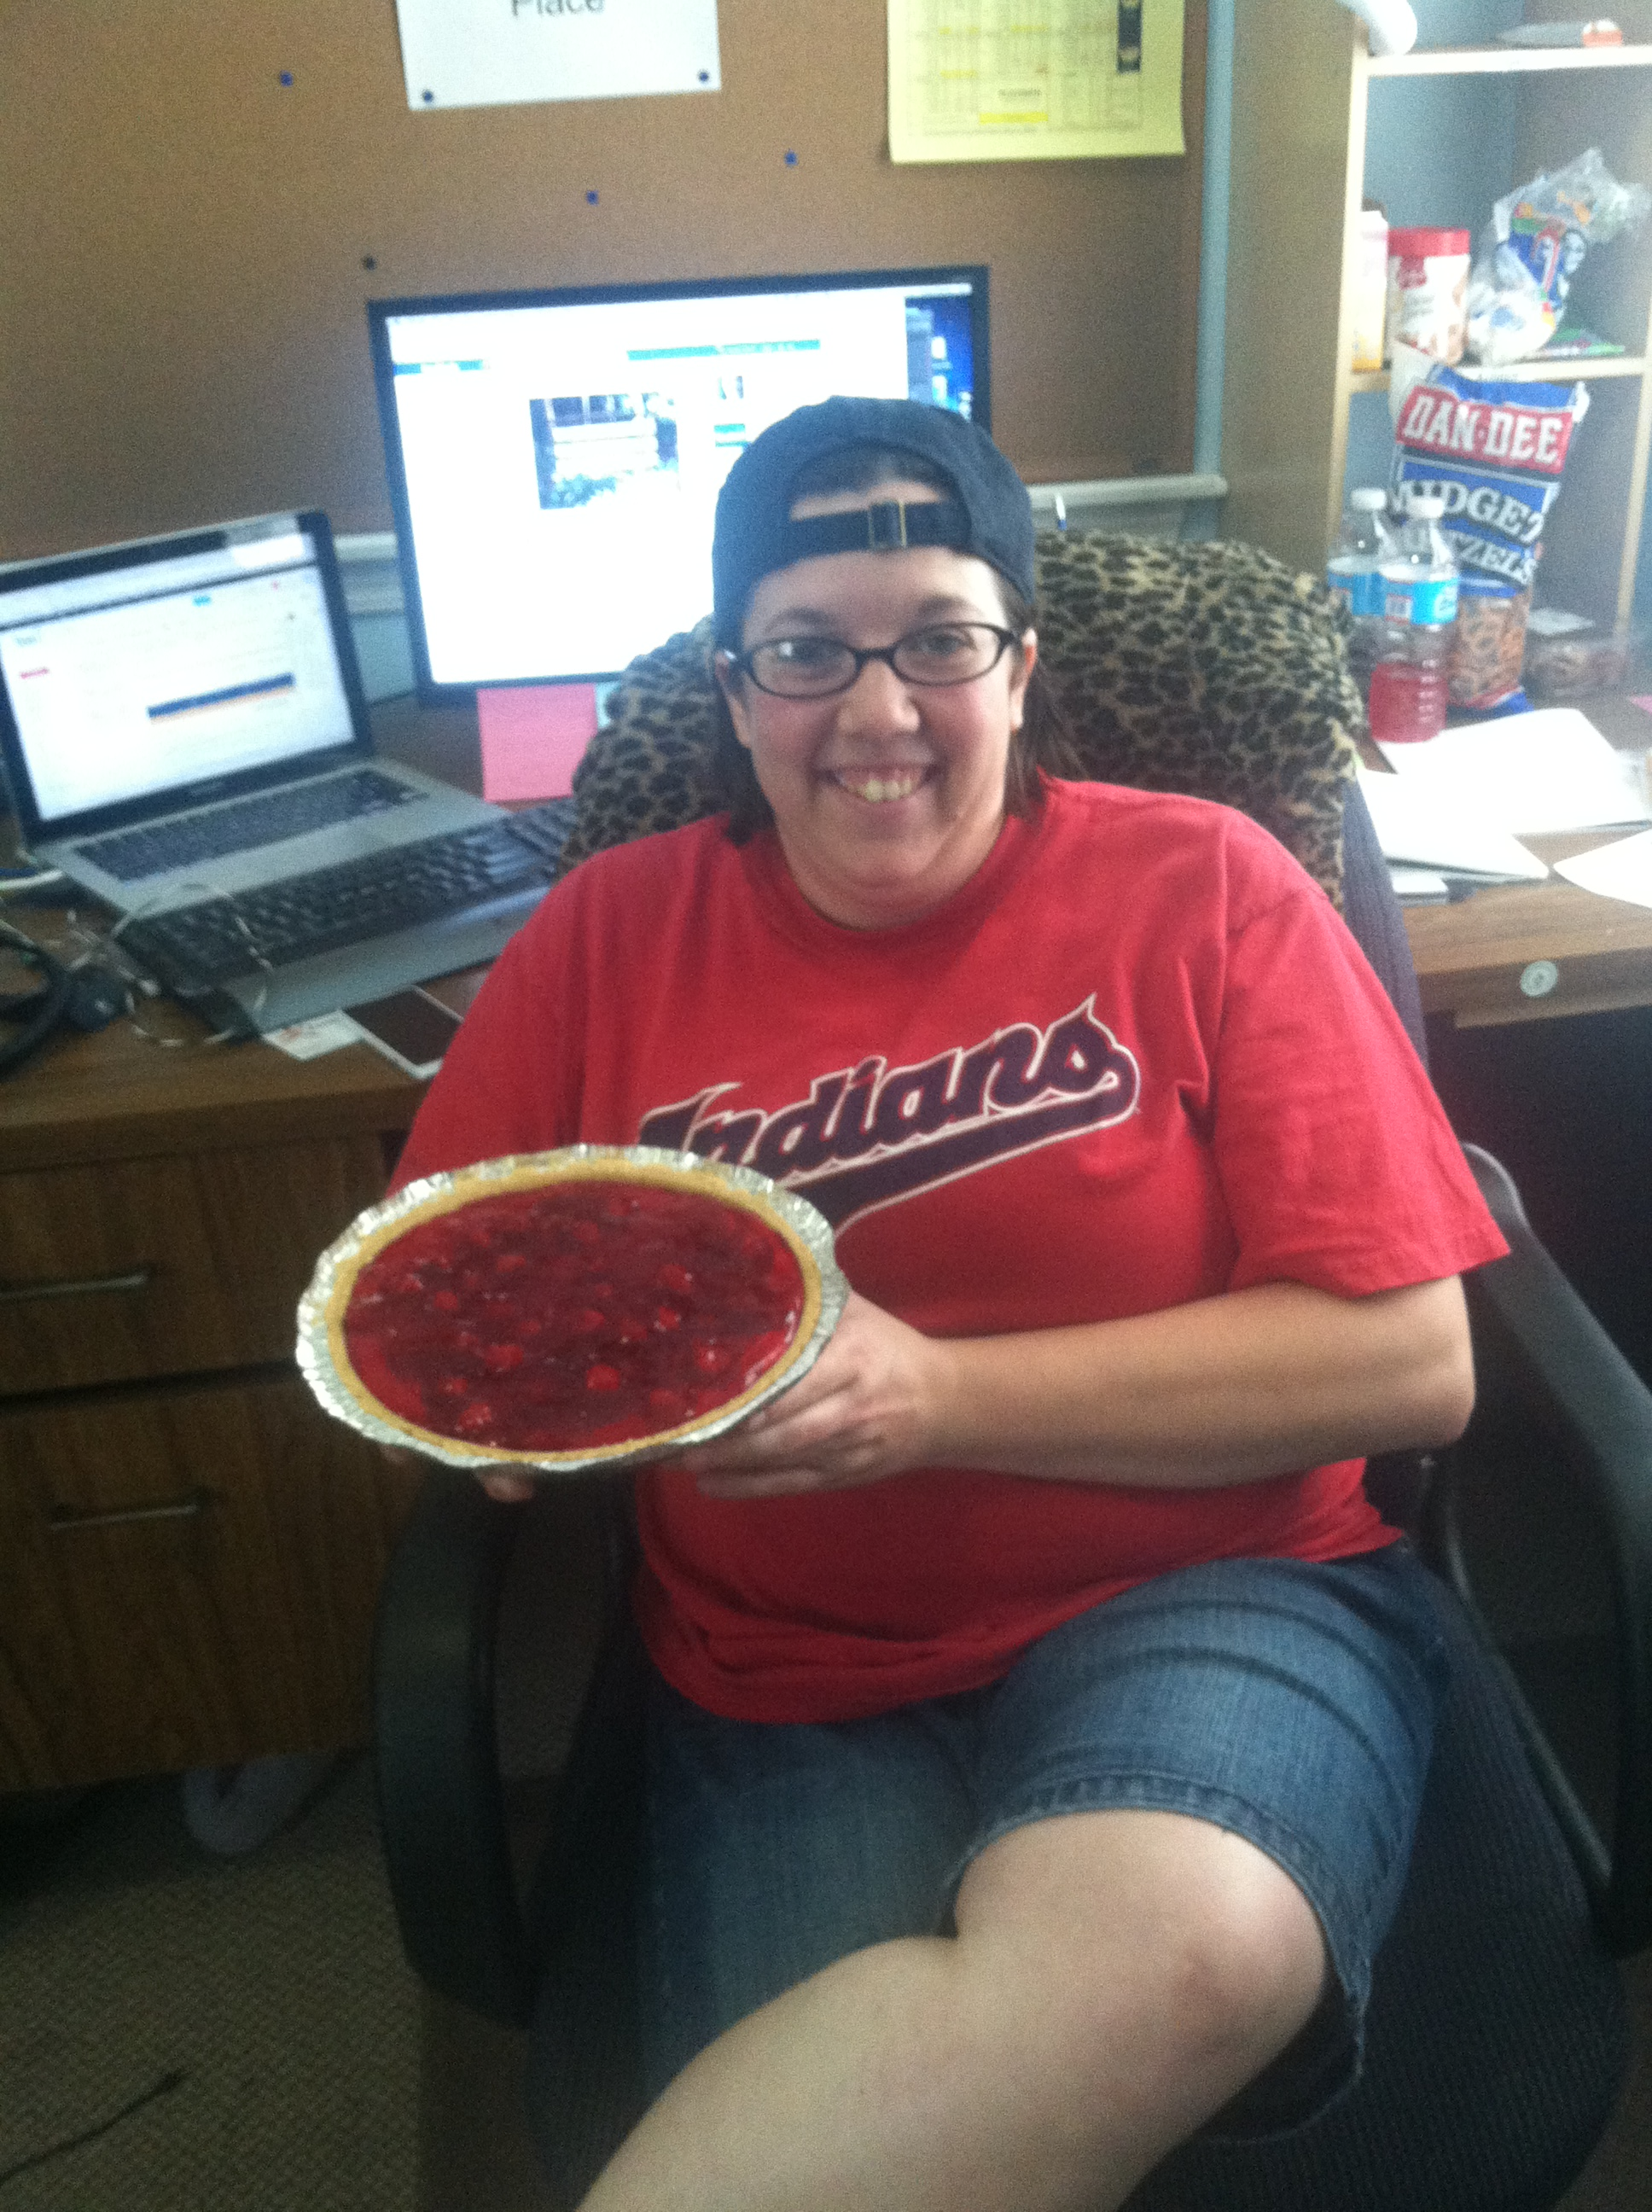 Stacey with Cherry Cheesecake